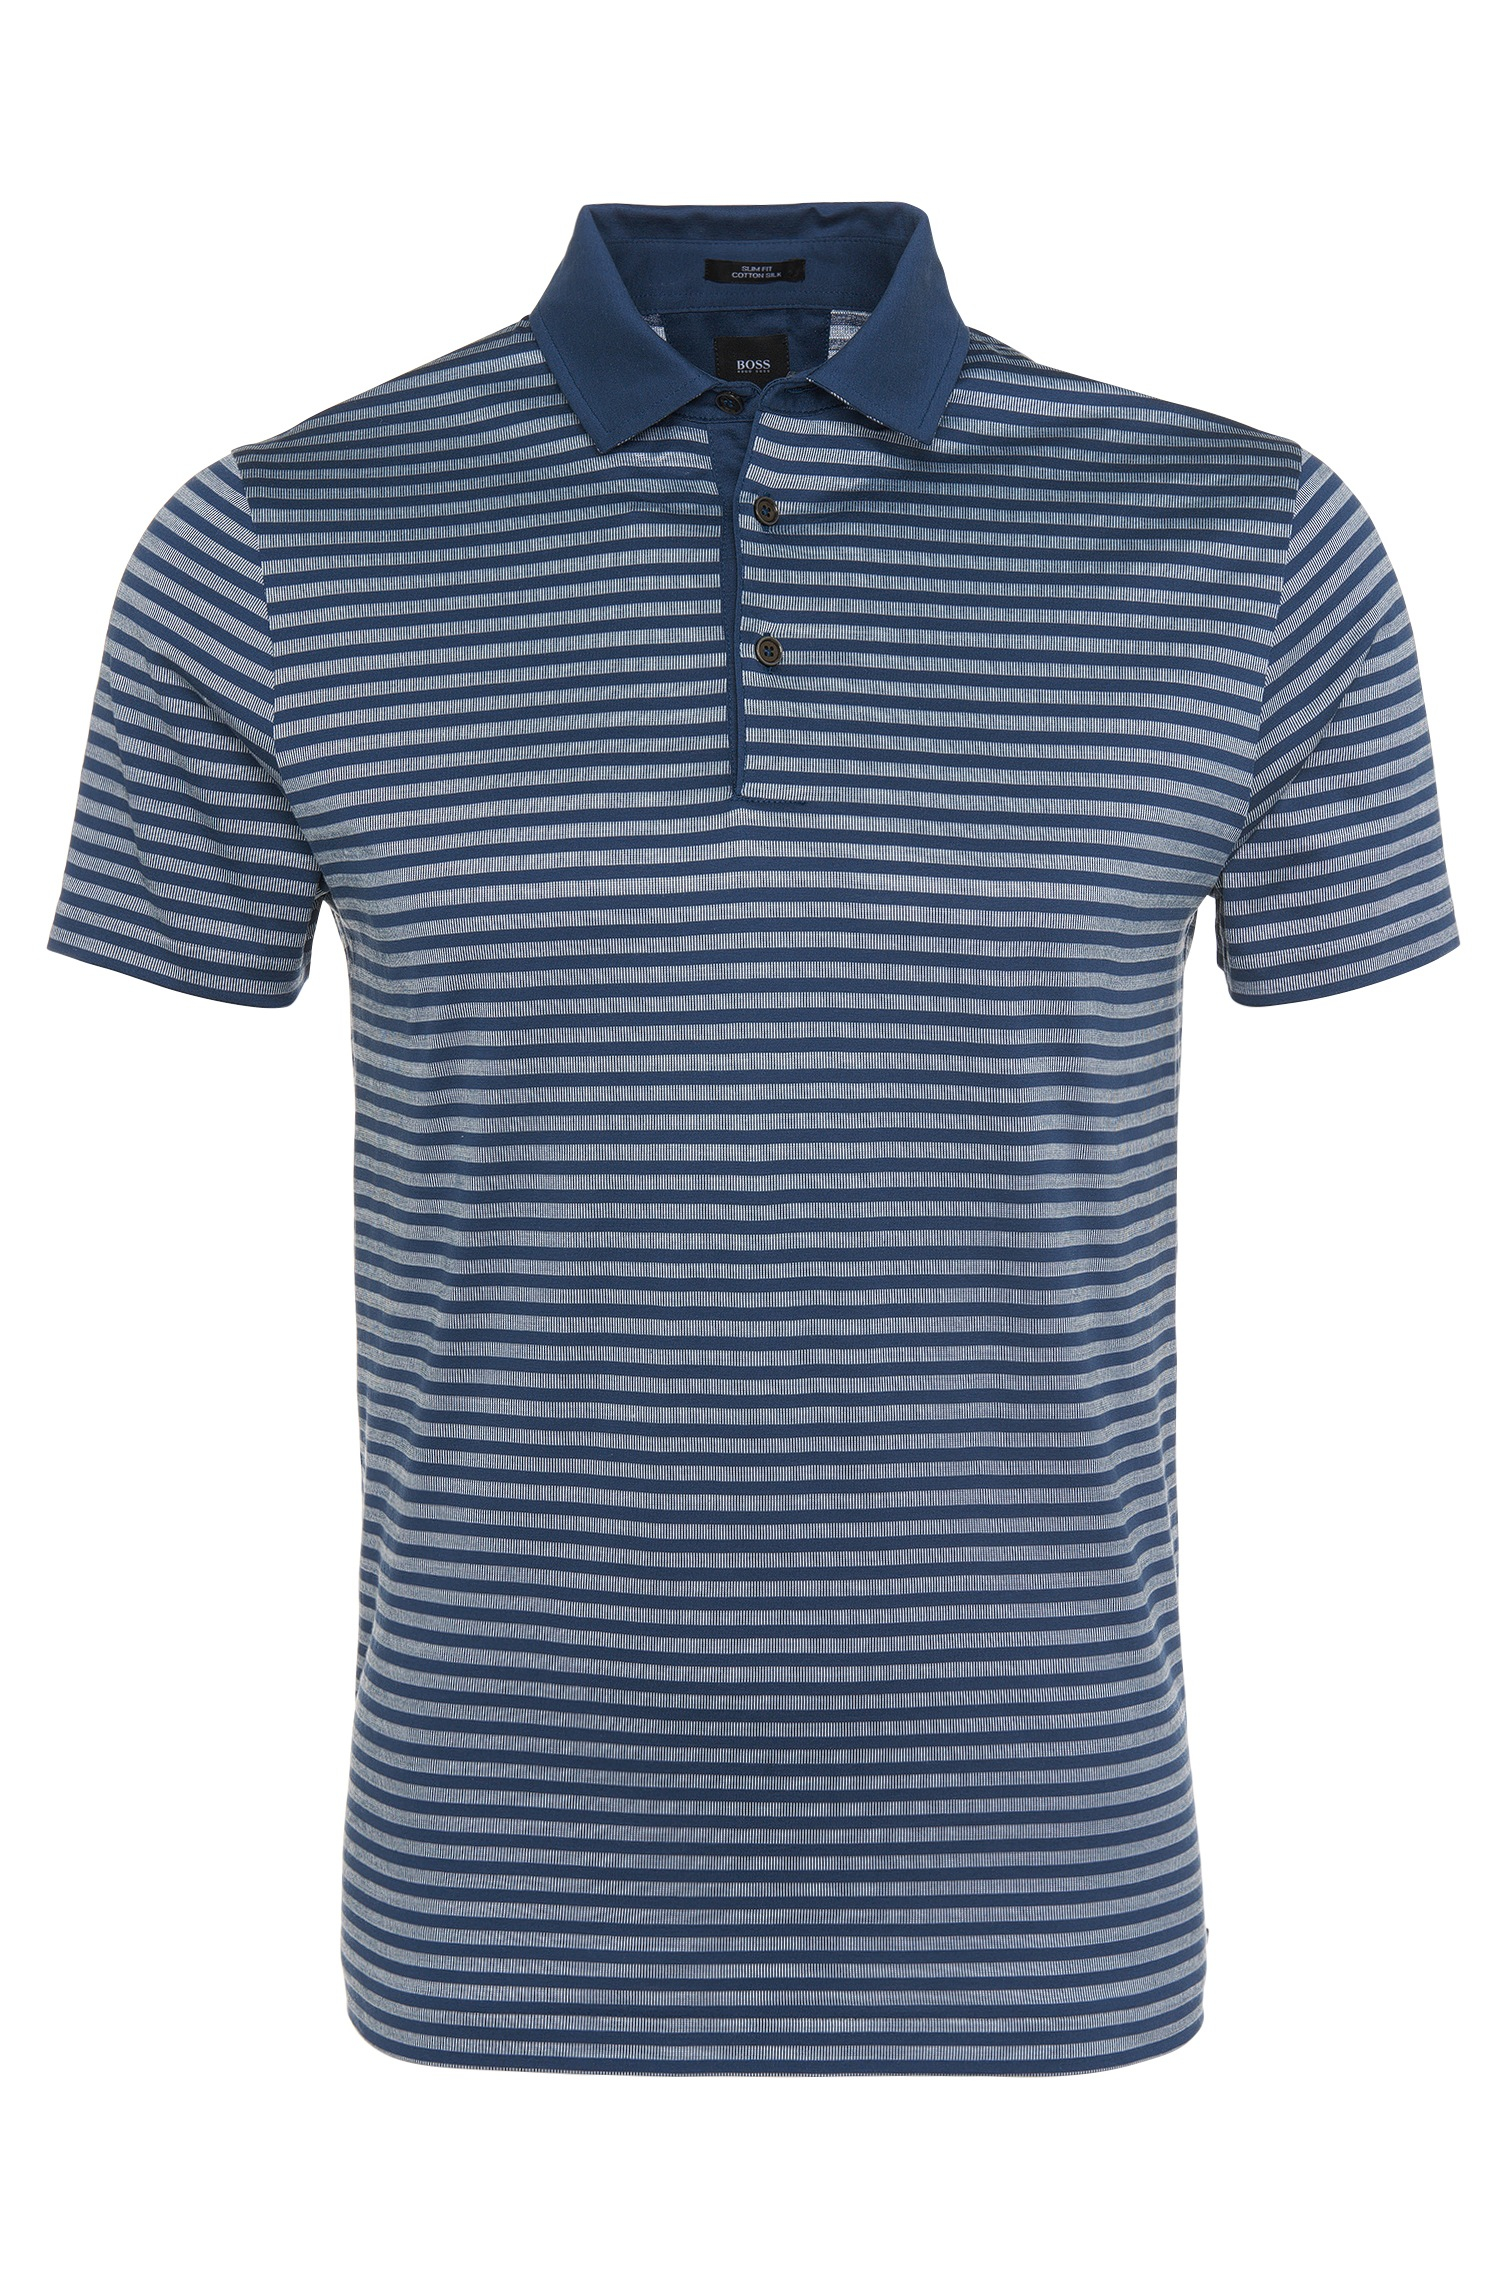 Lyst Boss Striped Slim Fit Polo Shirt In Pure Cotton 39 T